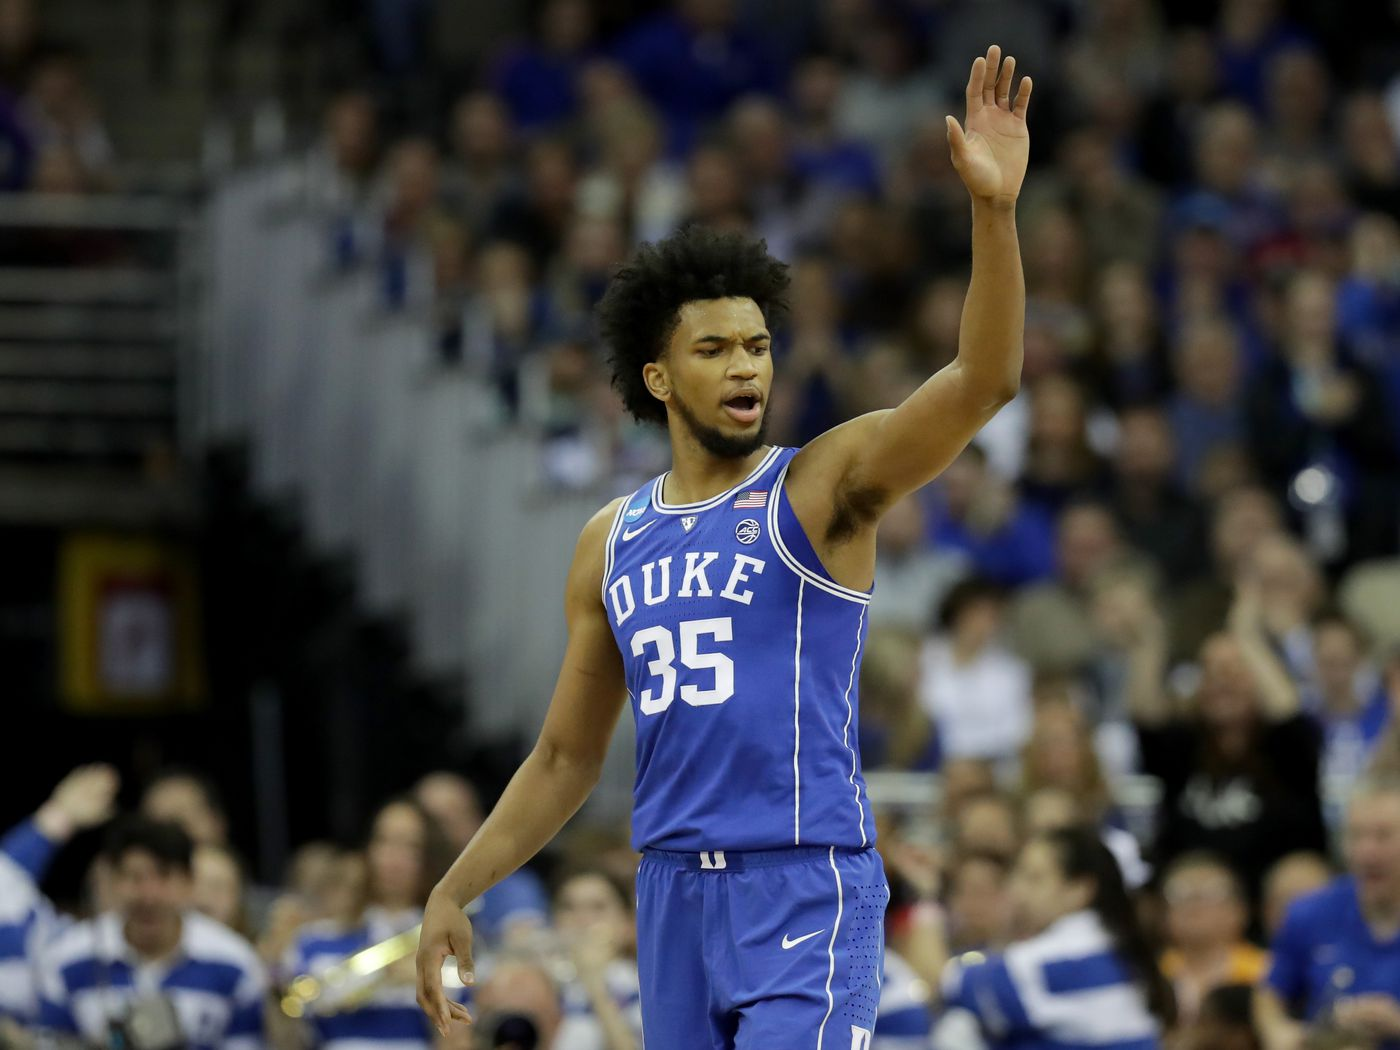 b1e8cefb1b6 Marvin Bagley III expected to snub Nike and sign 5-year shoe deal with Puma  - SBNation.com